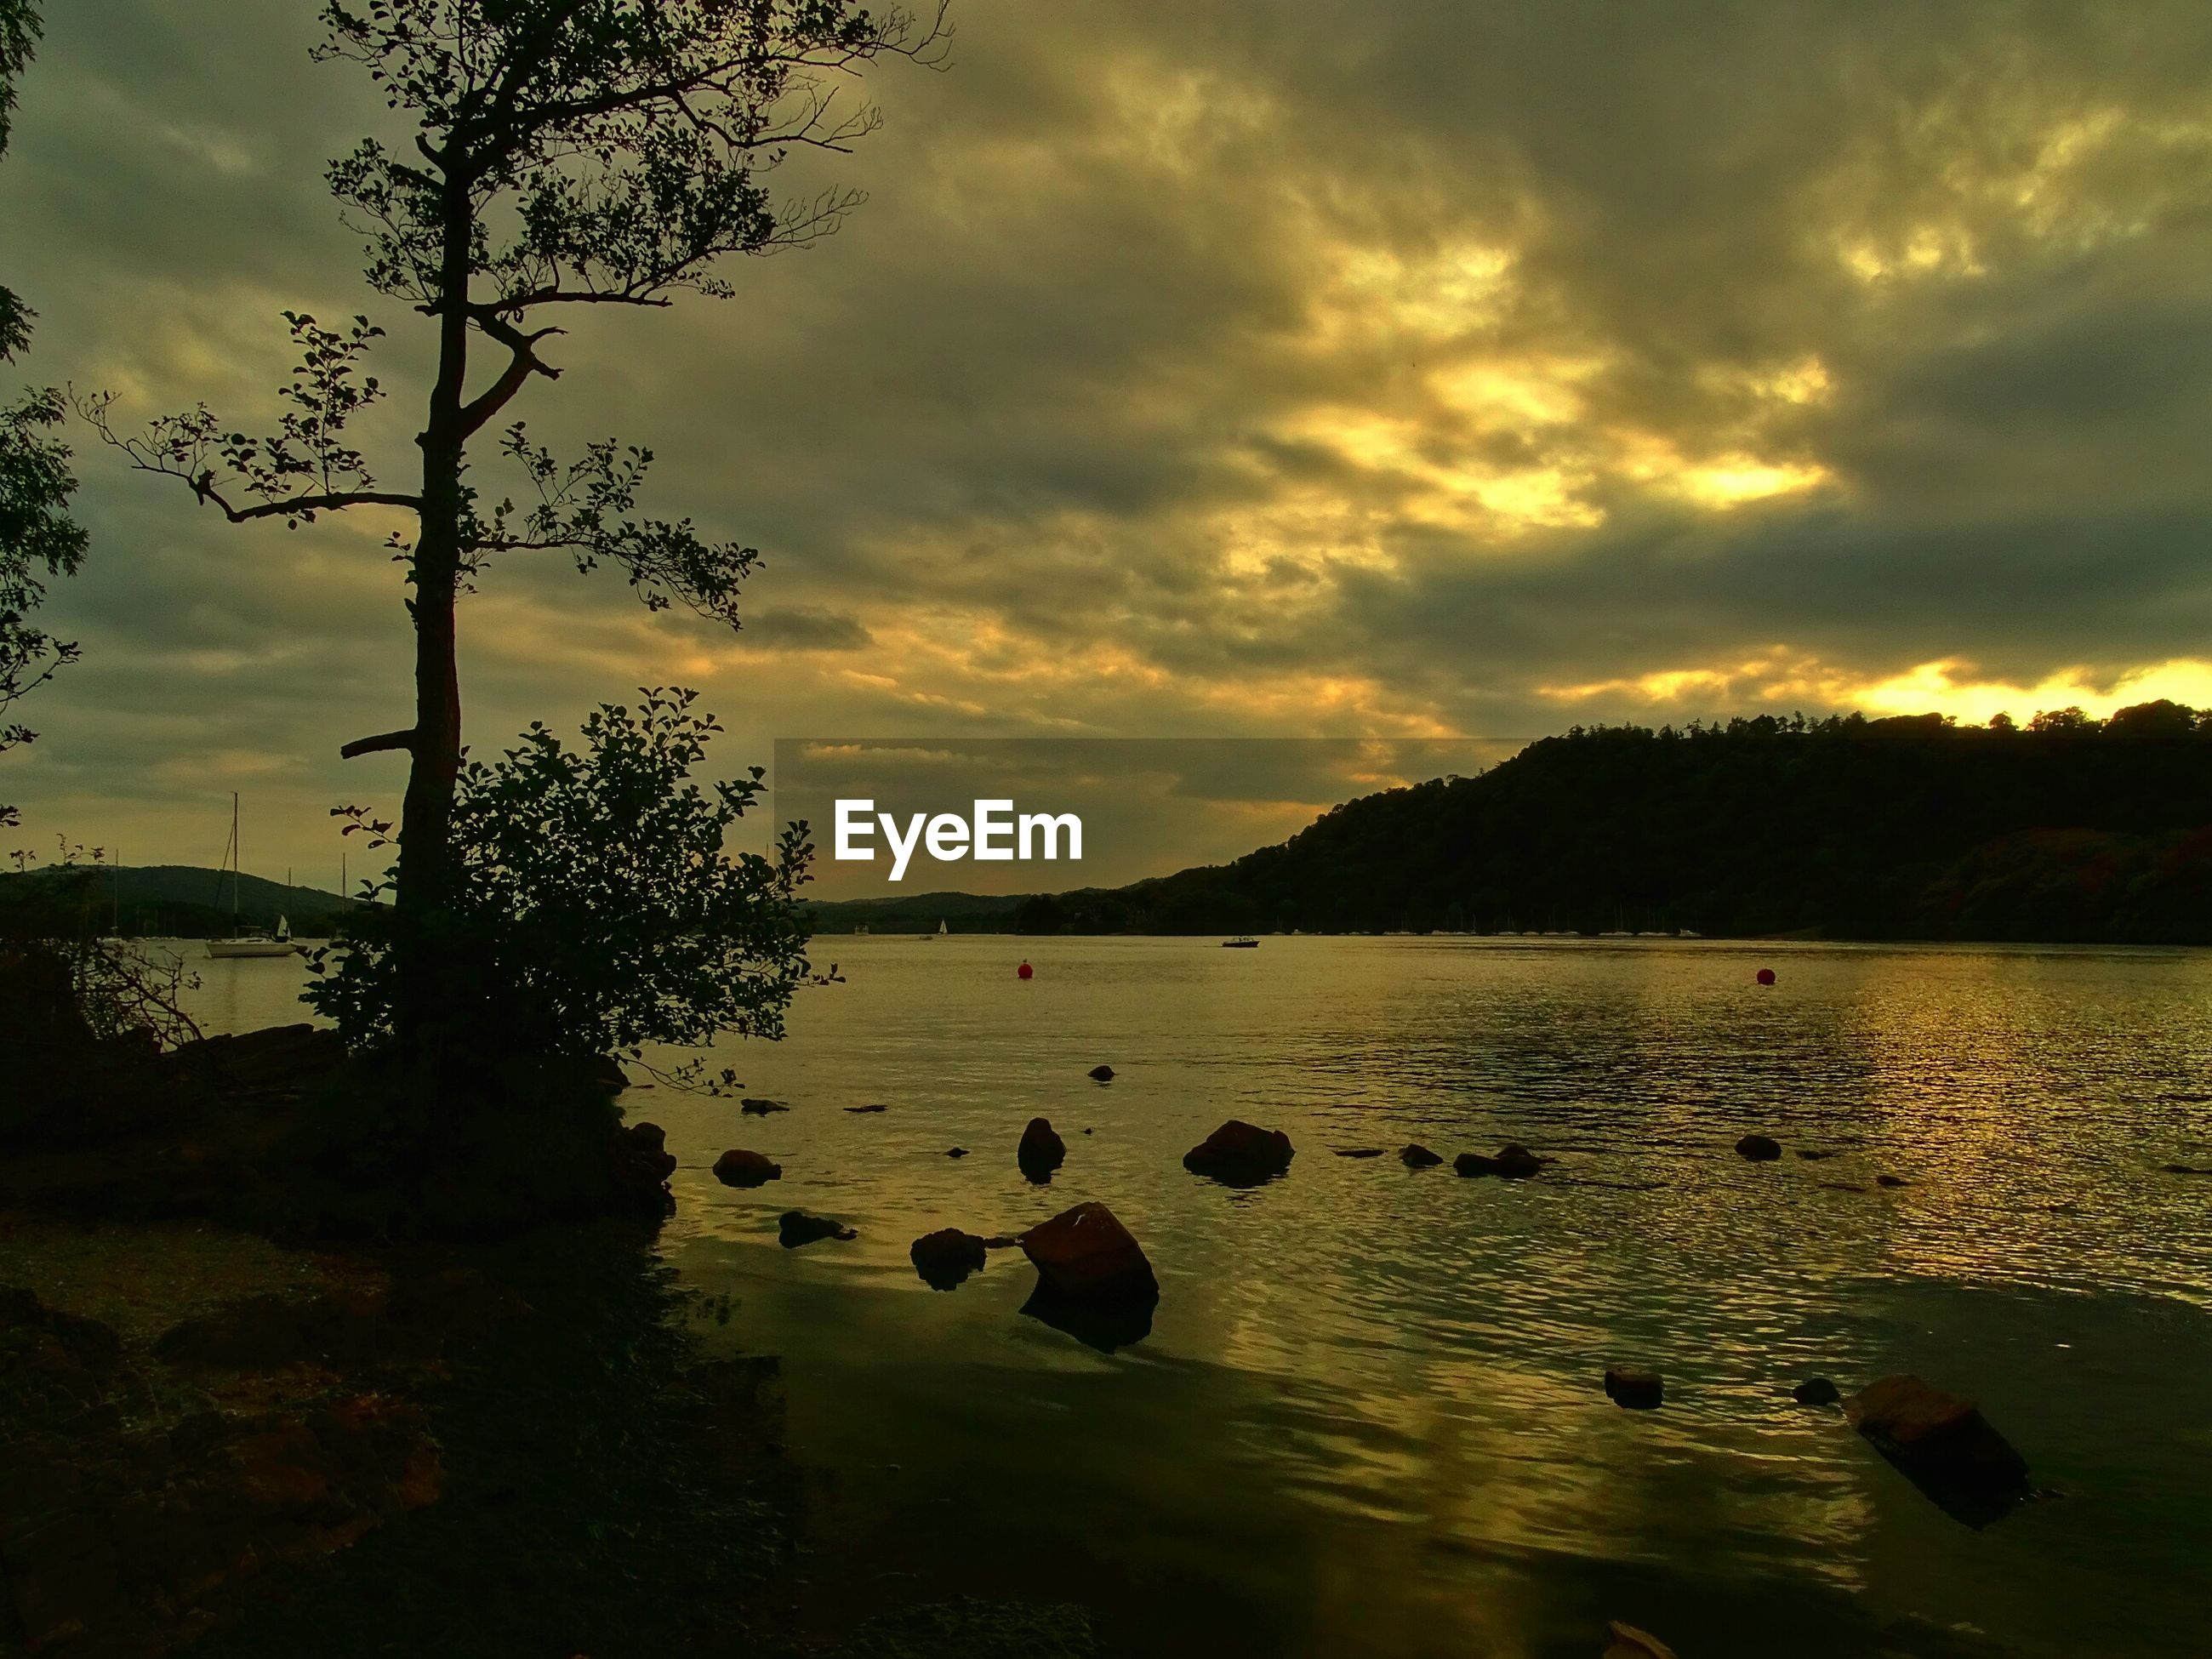 Scenic view of lake against cloudy sky at sunset